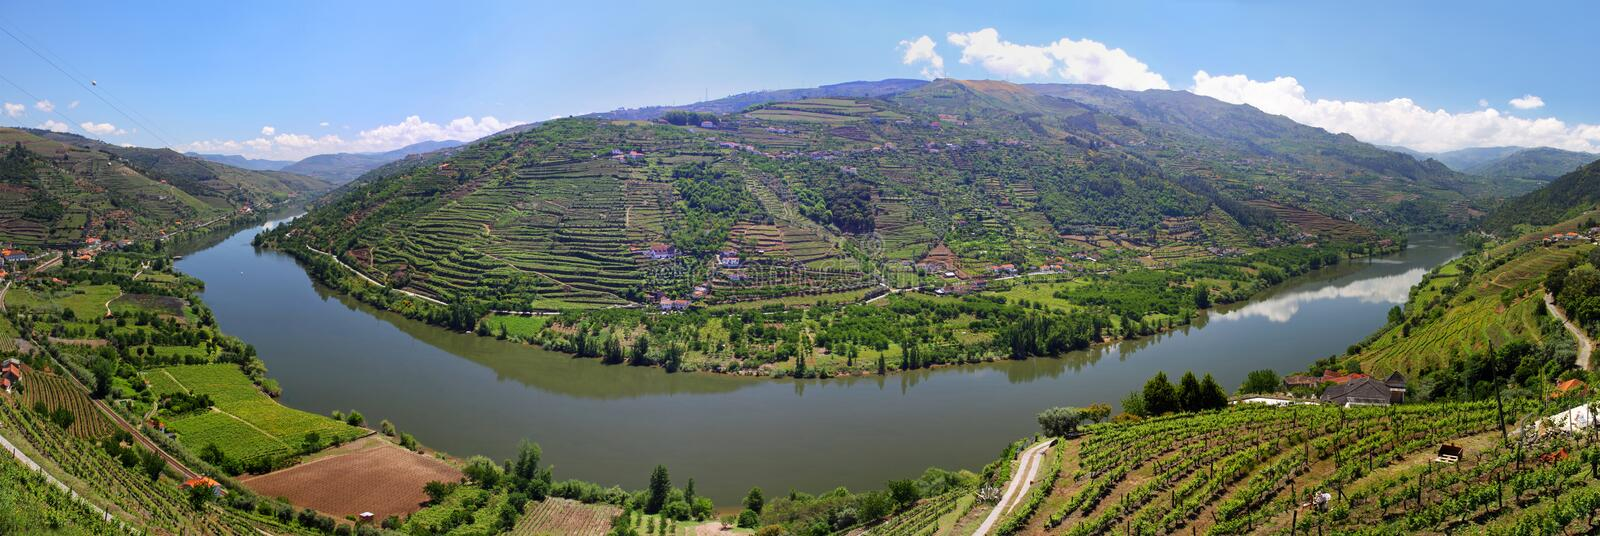 Valley of river Douro with vineyards near Mesao Frio Portugal royalty free stock photography